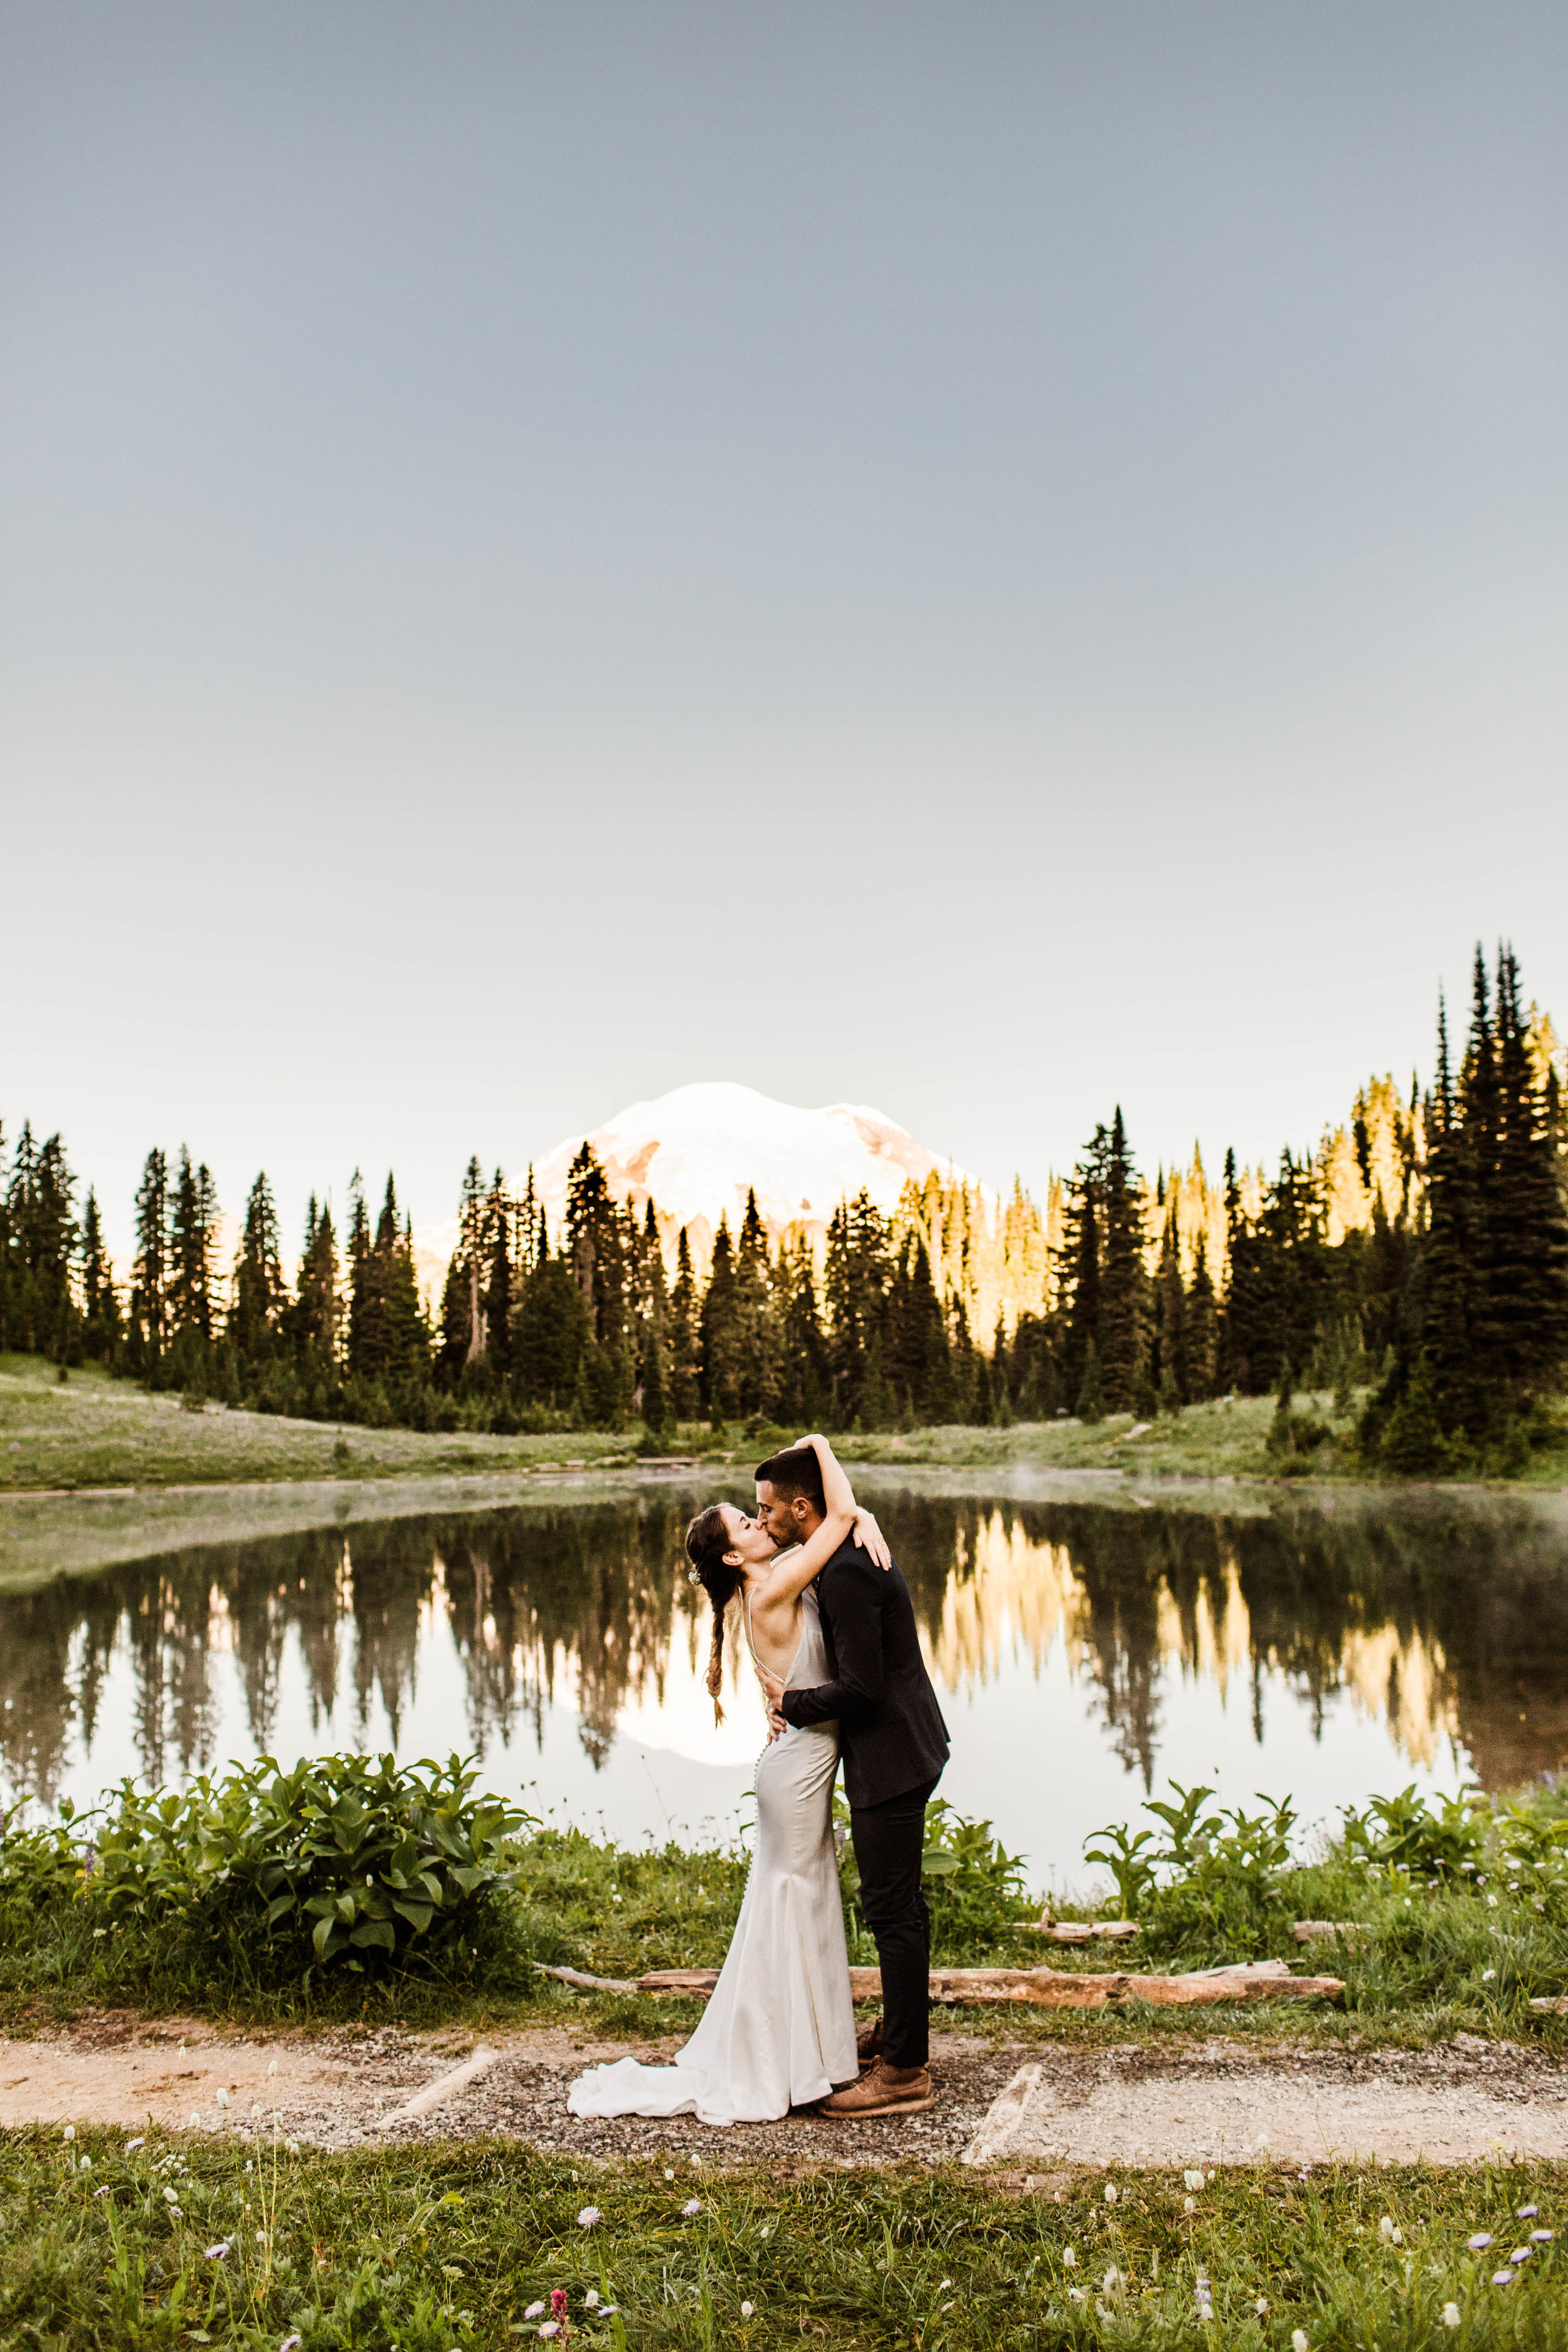 first kiss during elopement ceremony in Mount Rainier | national park elopement photographers in Washington state